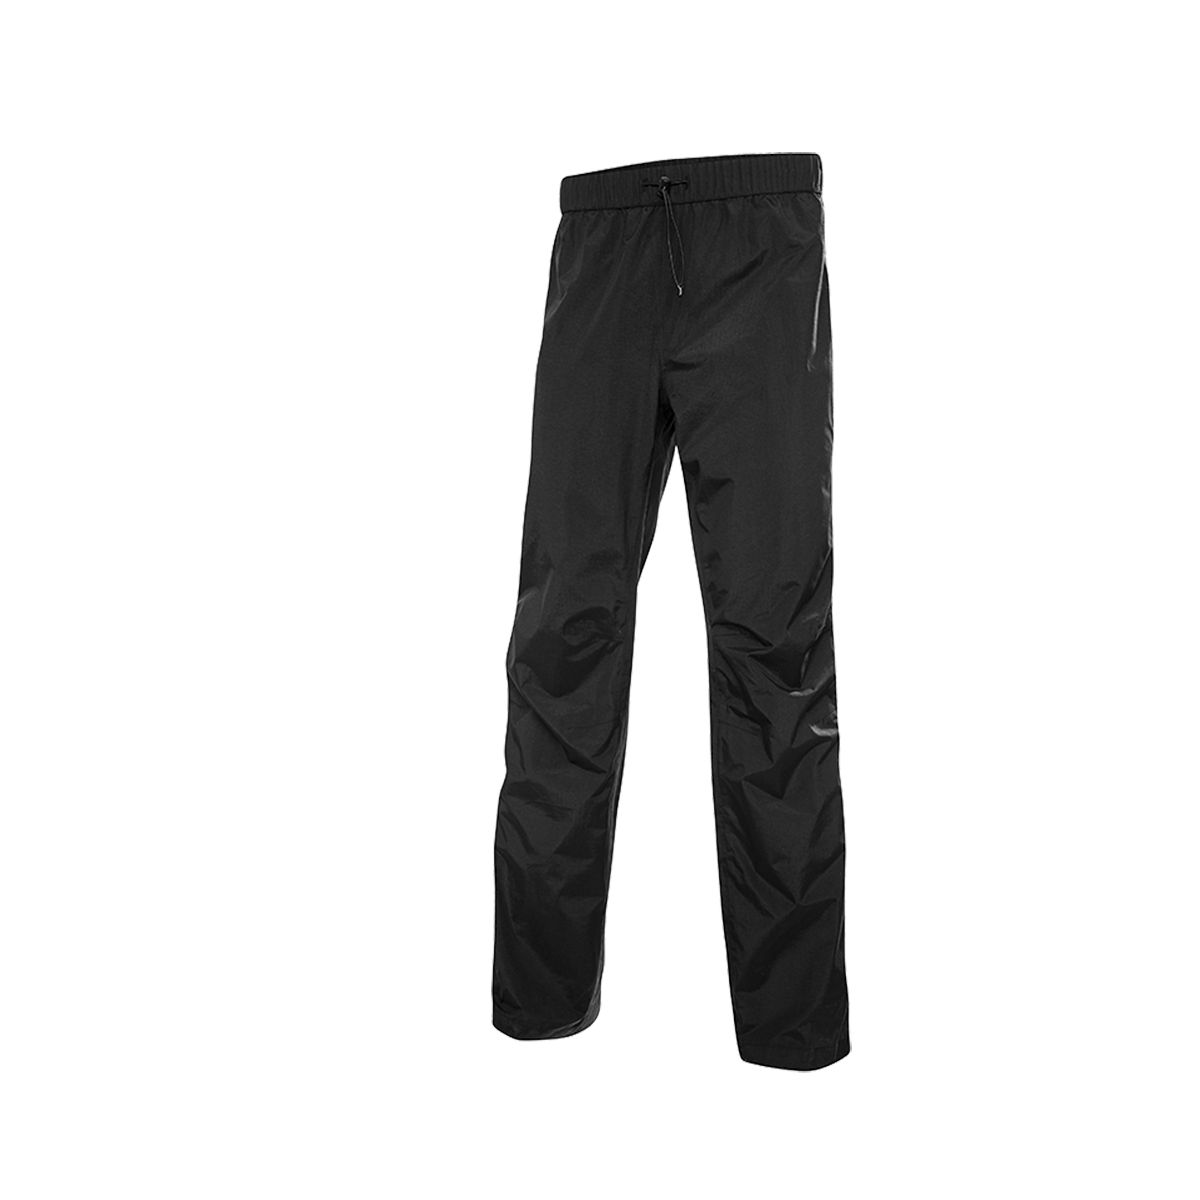 PROTECTIVE SEATTLE Overtrousers | Bukser